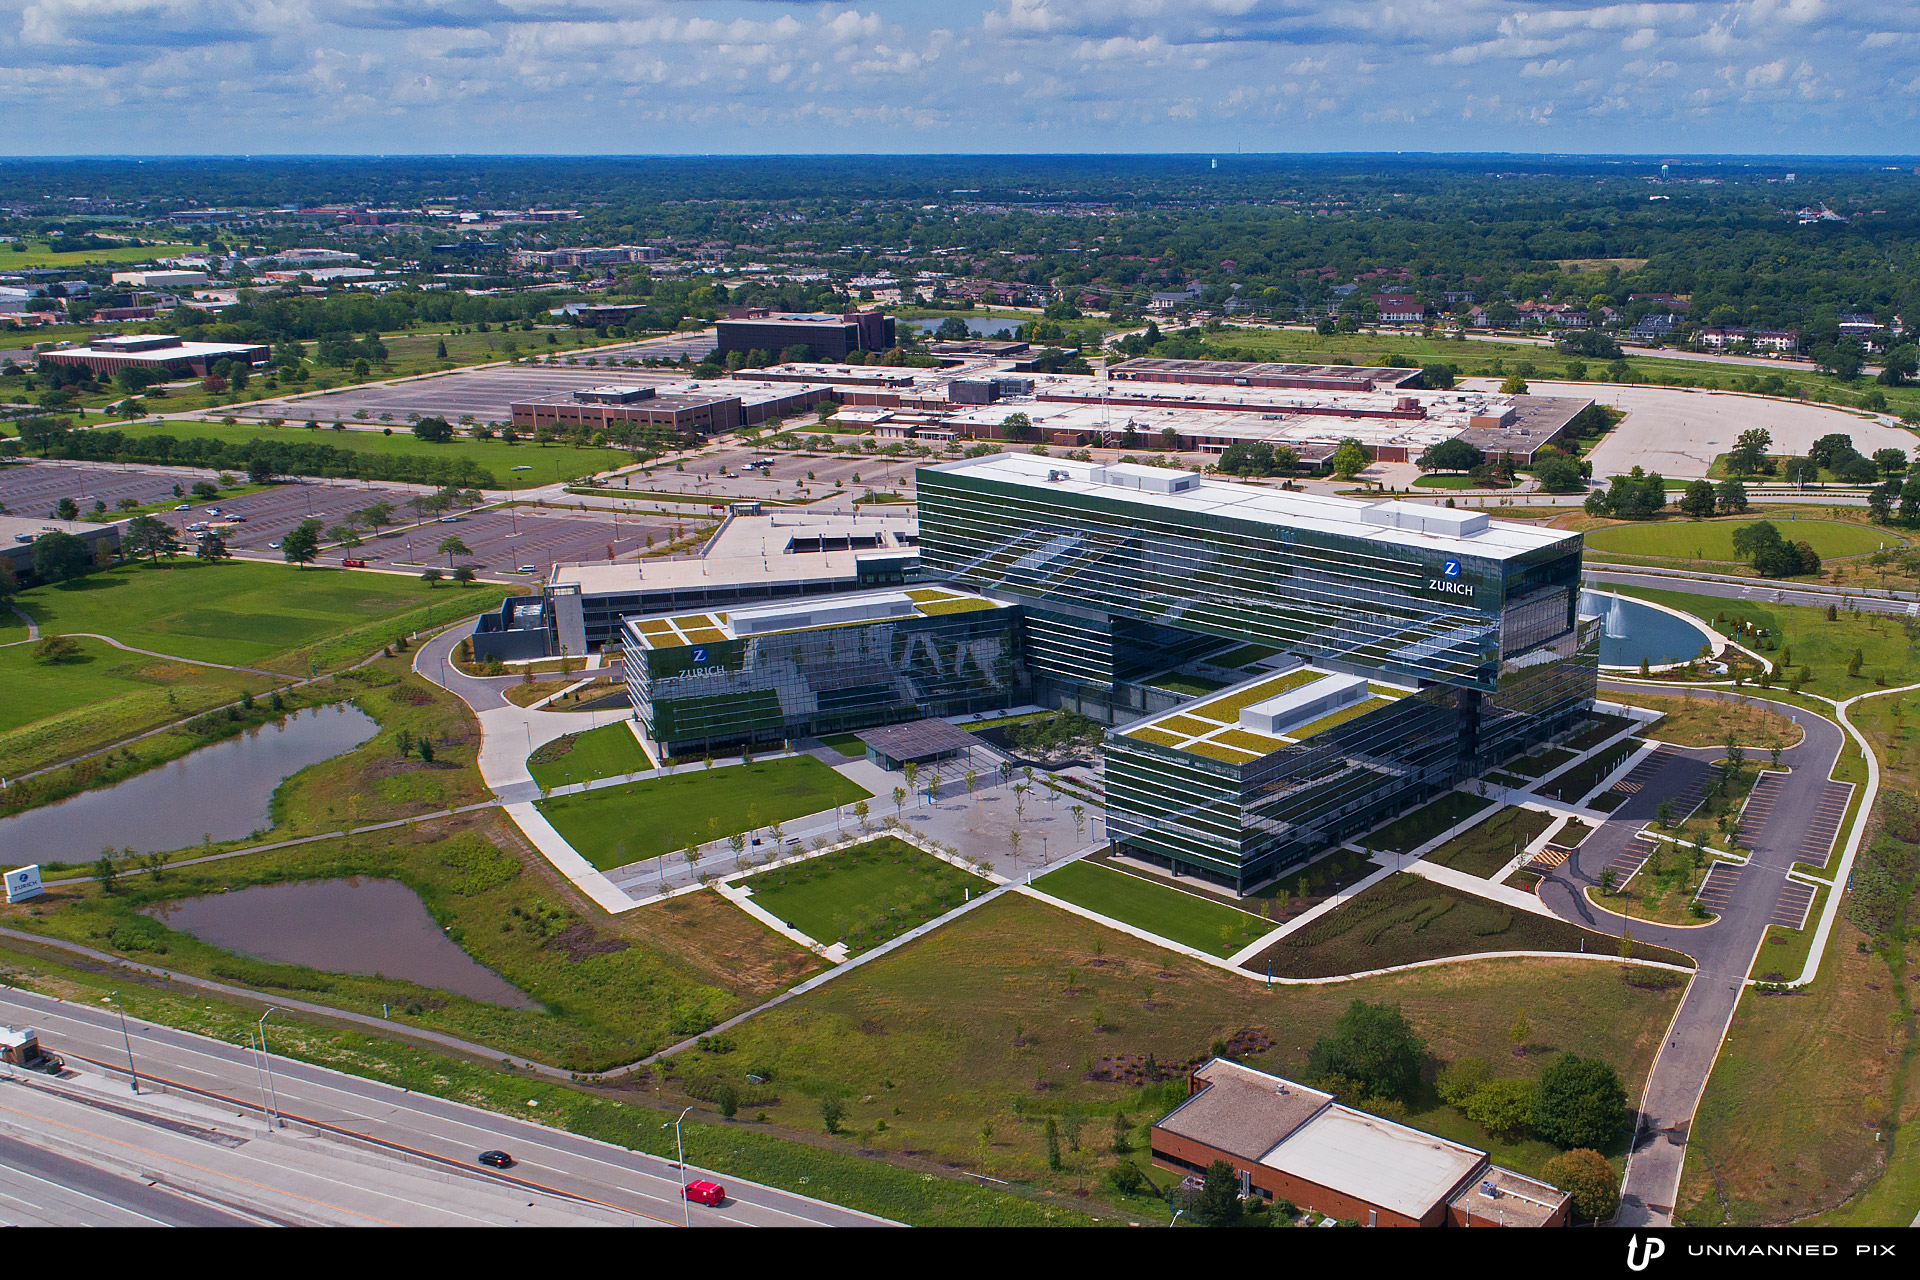 aerial view of the zurich north america headquarters, facing north, photographed by jacob rosenfeld for unmannedpix.com